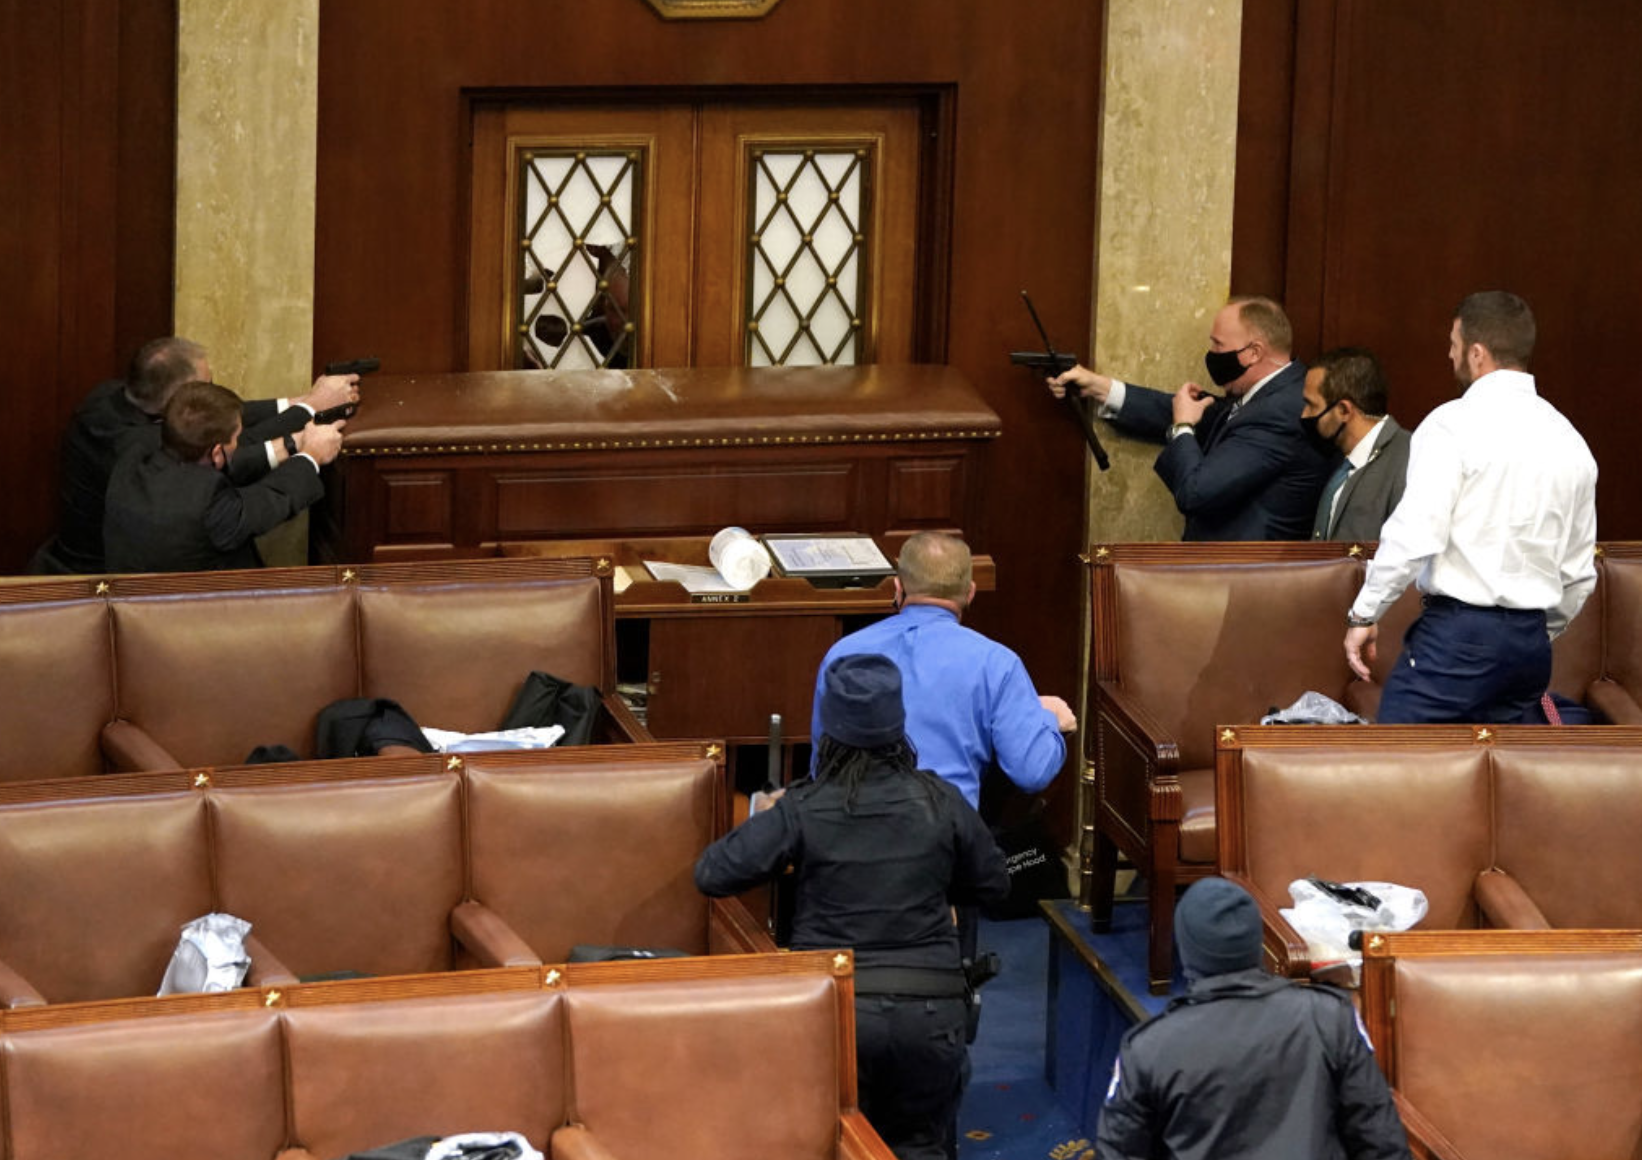 U.S. Capitol police officers point their guns at a door that was vandalized in the House Chamber during a joint session of Congress on January 06, 2021 in Washington, DC. (Photo by Drew Angerer/Getty Images)